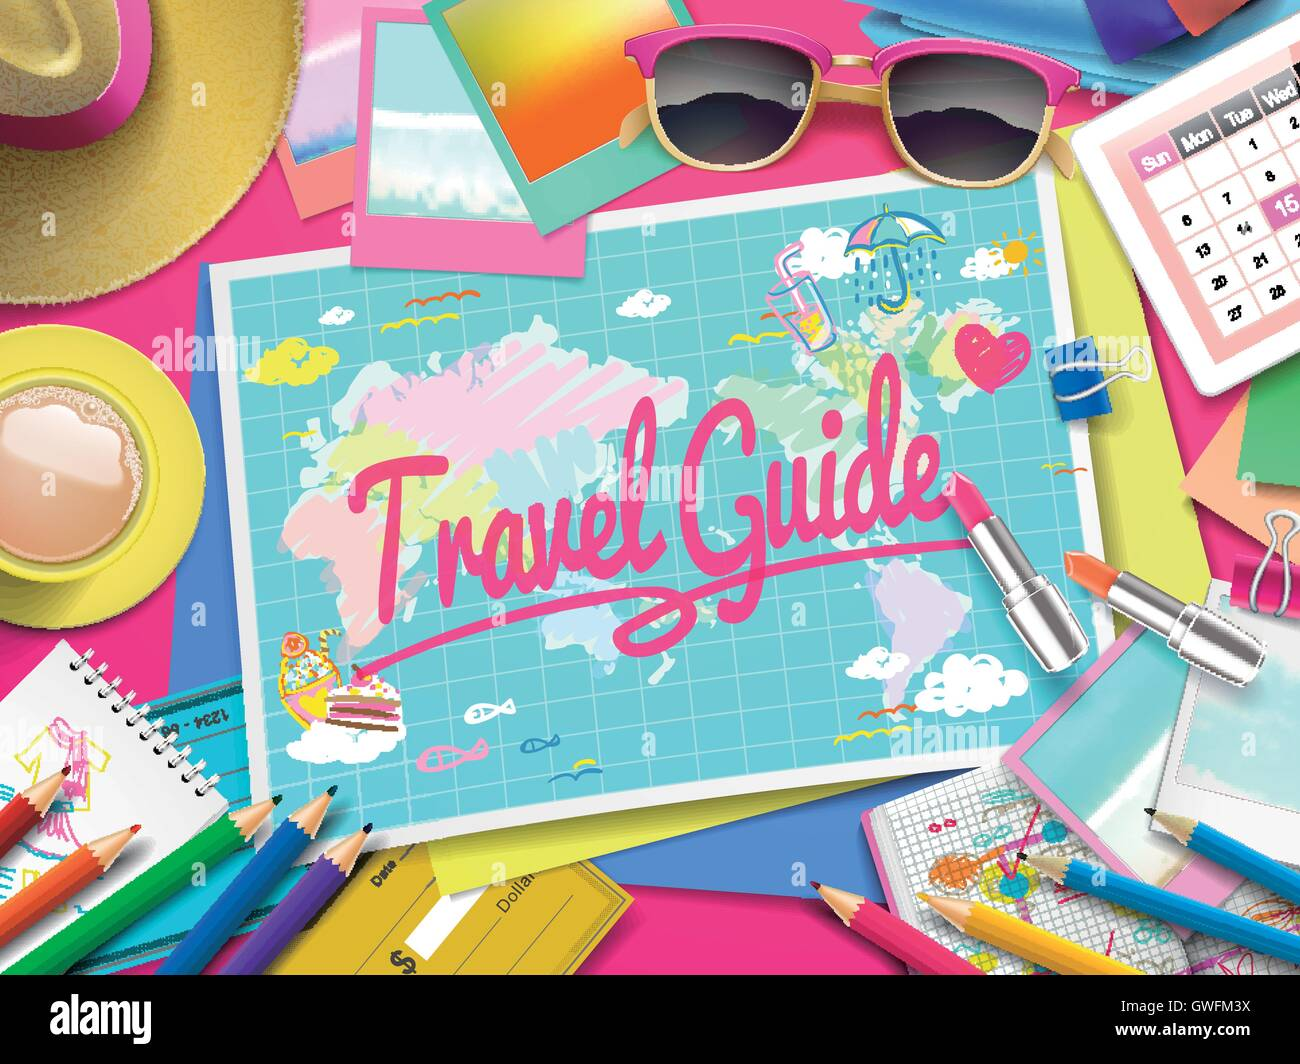 Travel Guide on map, top view of colorful travel essentials on table - Stock Vector